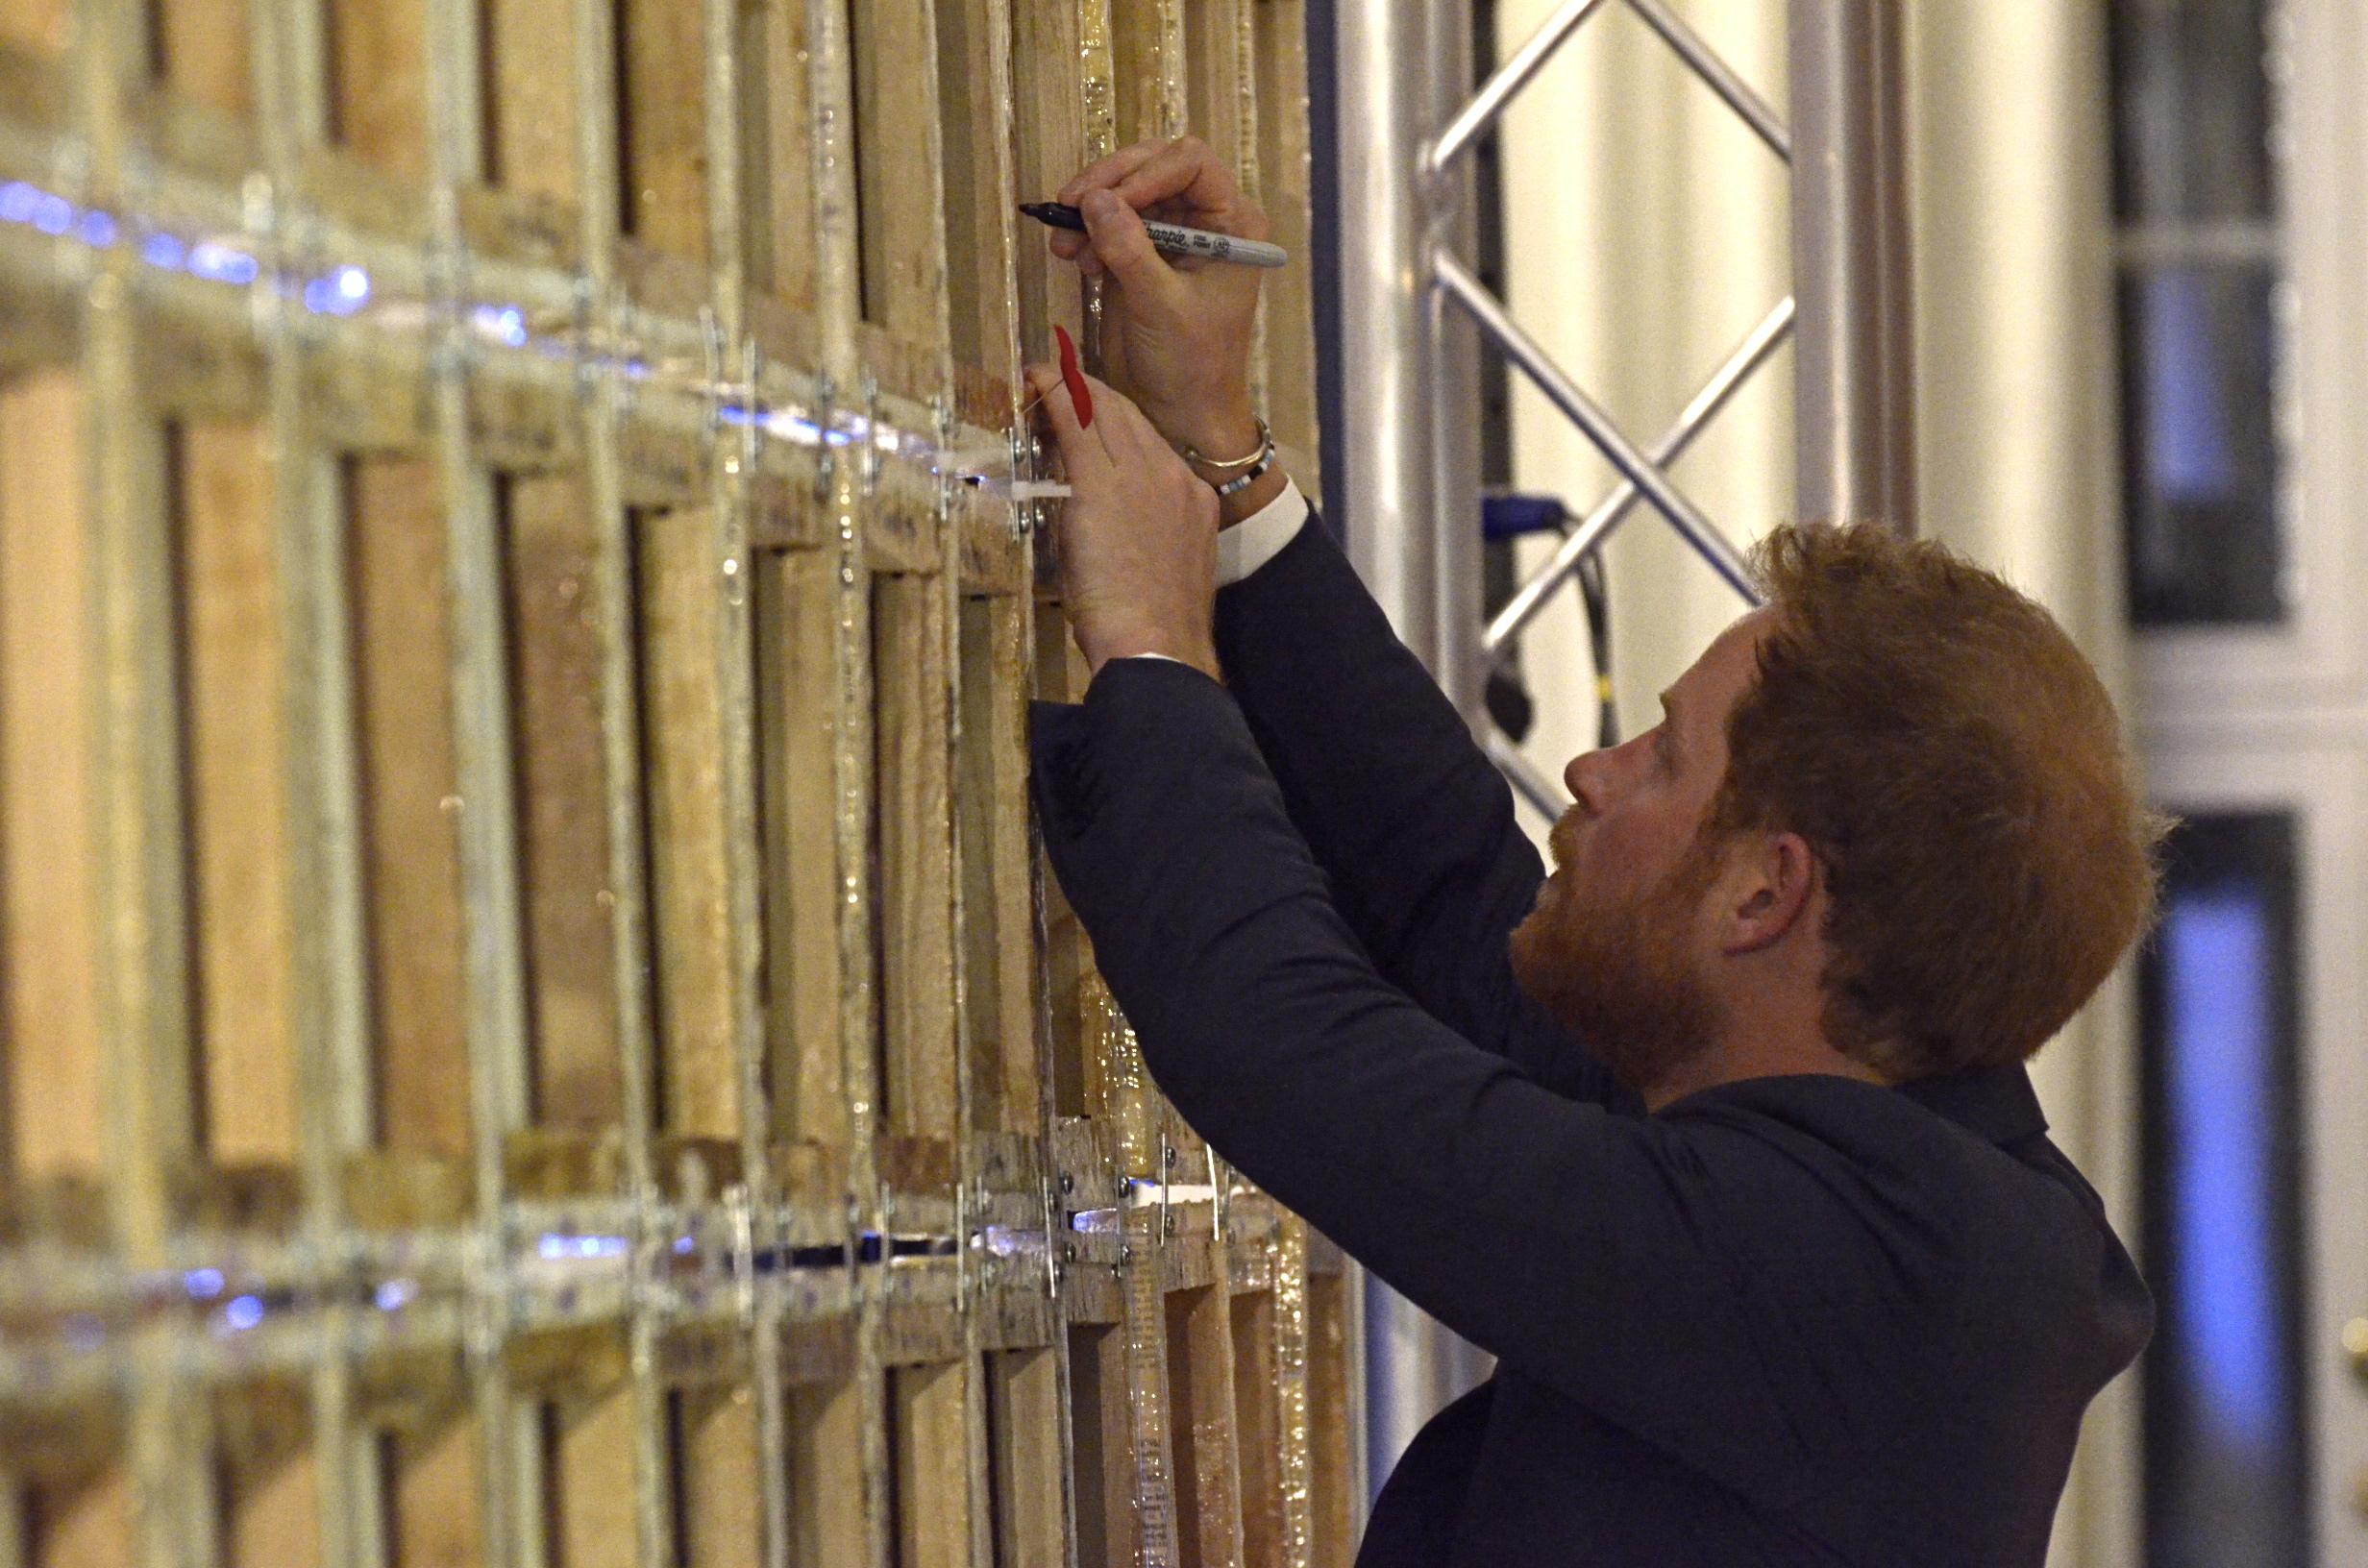 Prince Harry signs lestweforgetCANADA mural November 11, 2015